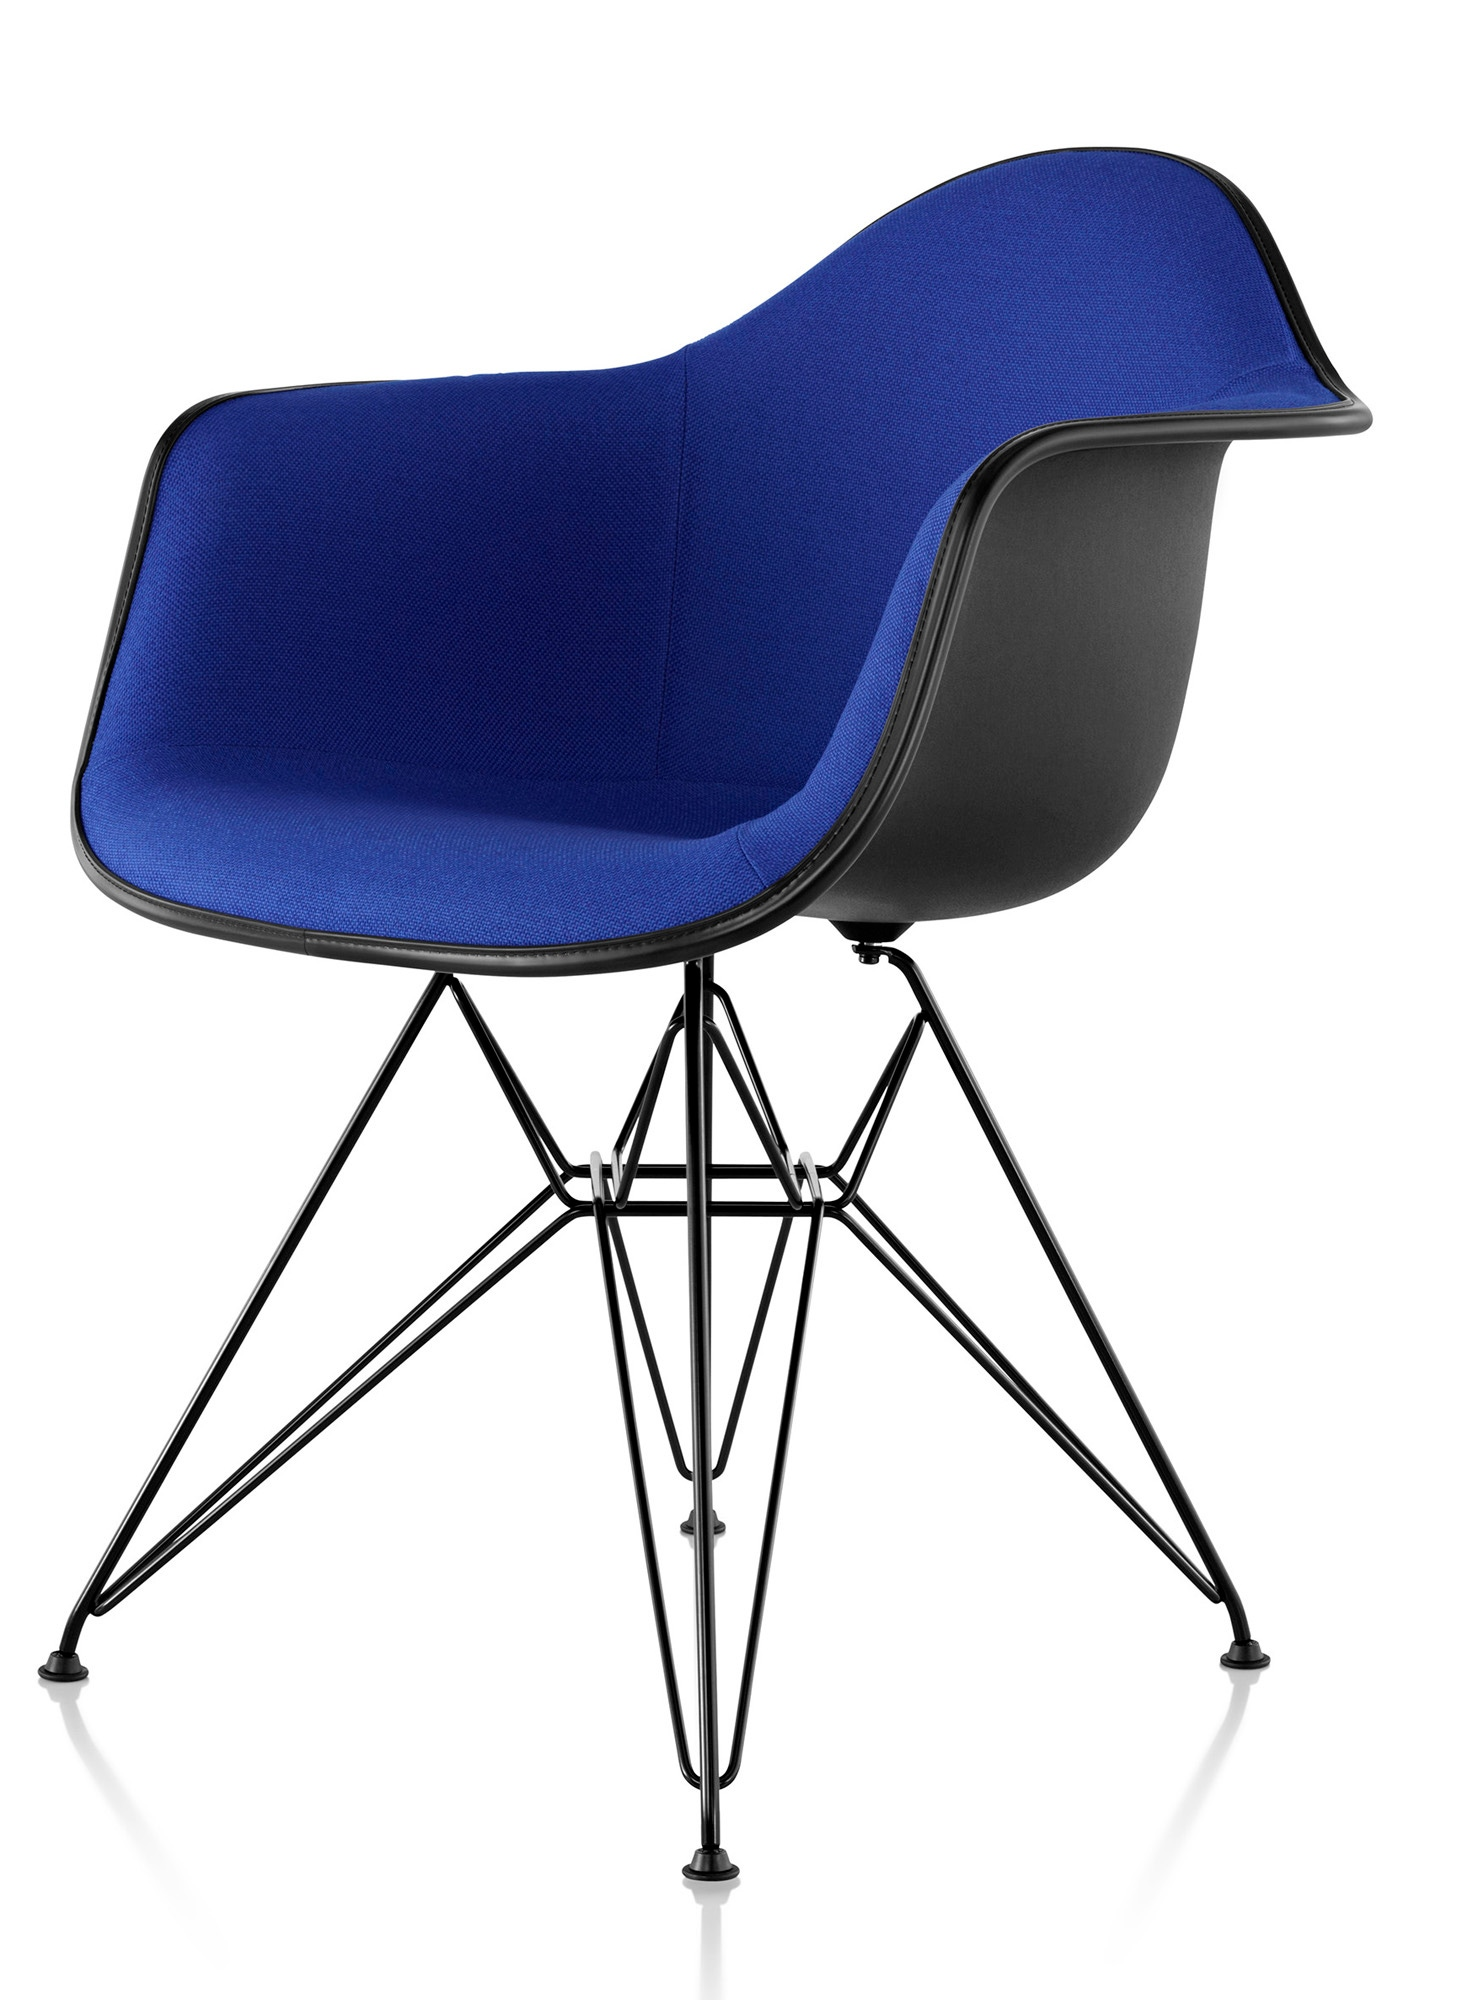 herman miller eames molded plastic armchair upholstered. Black Bedroom Furniture Sets. Home Design Ideas